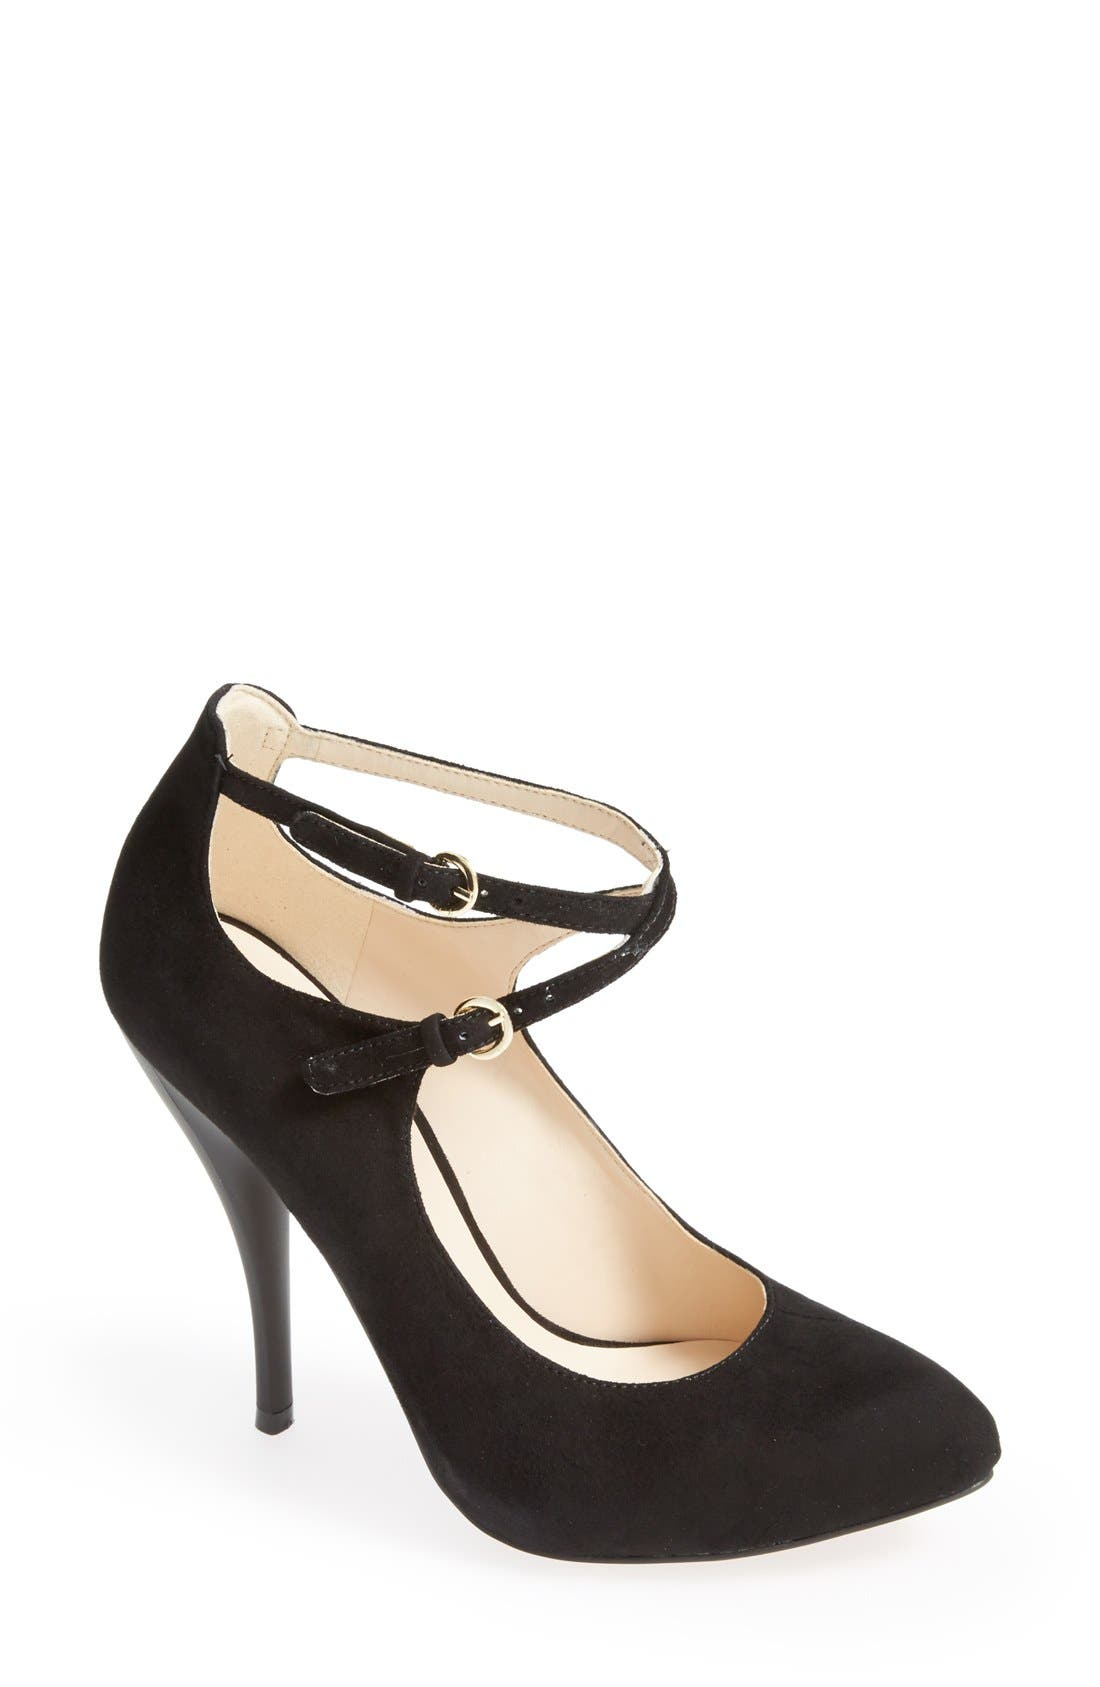 Alternate Image 1 Selected - Nine West 'Coherent' Ankle Strap Suede Pump (Women)